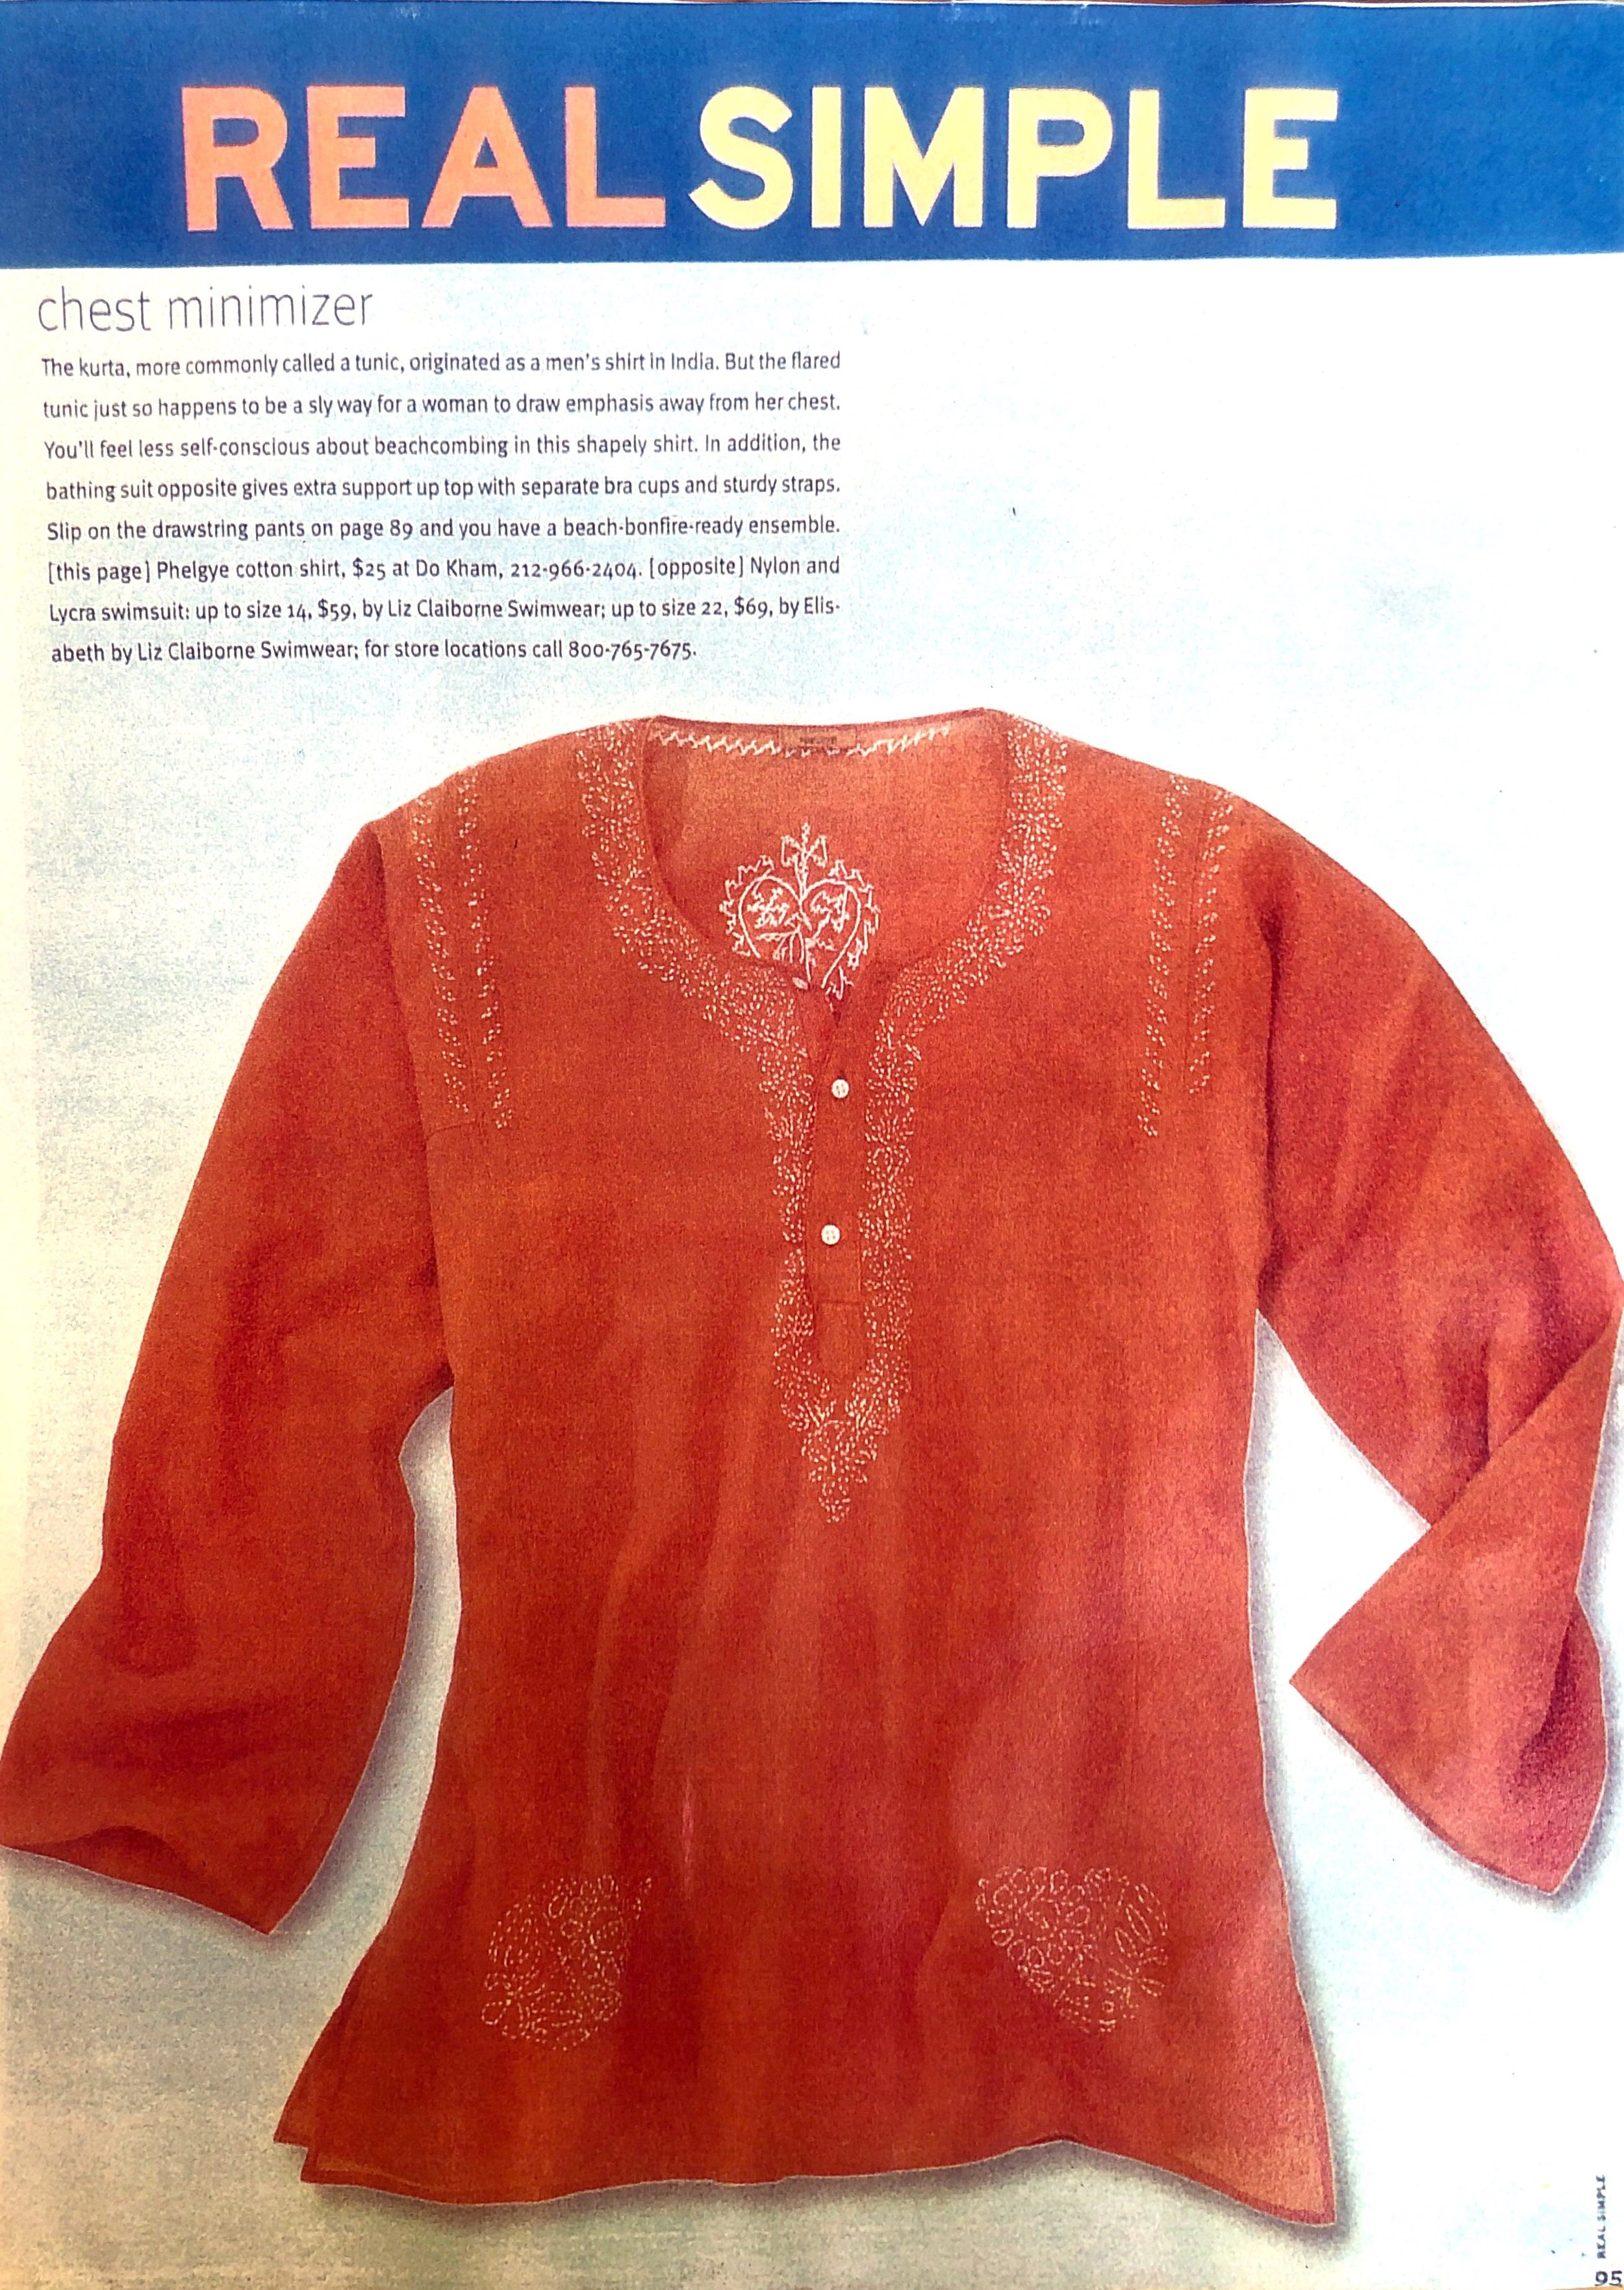 Real Simple - Dö Kham classic cotton tunic featured in Real Simple Magazine